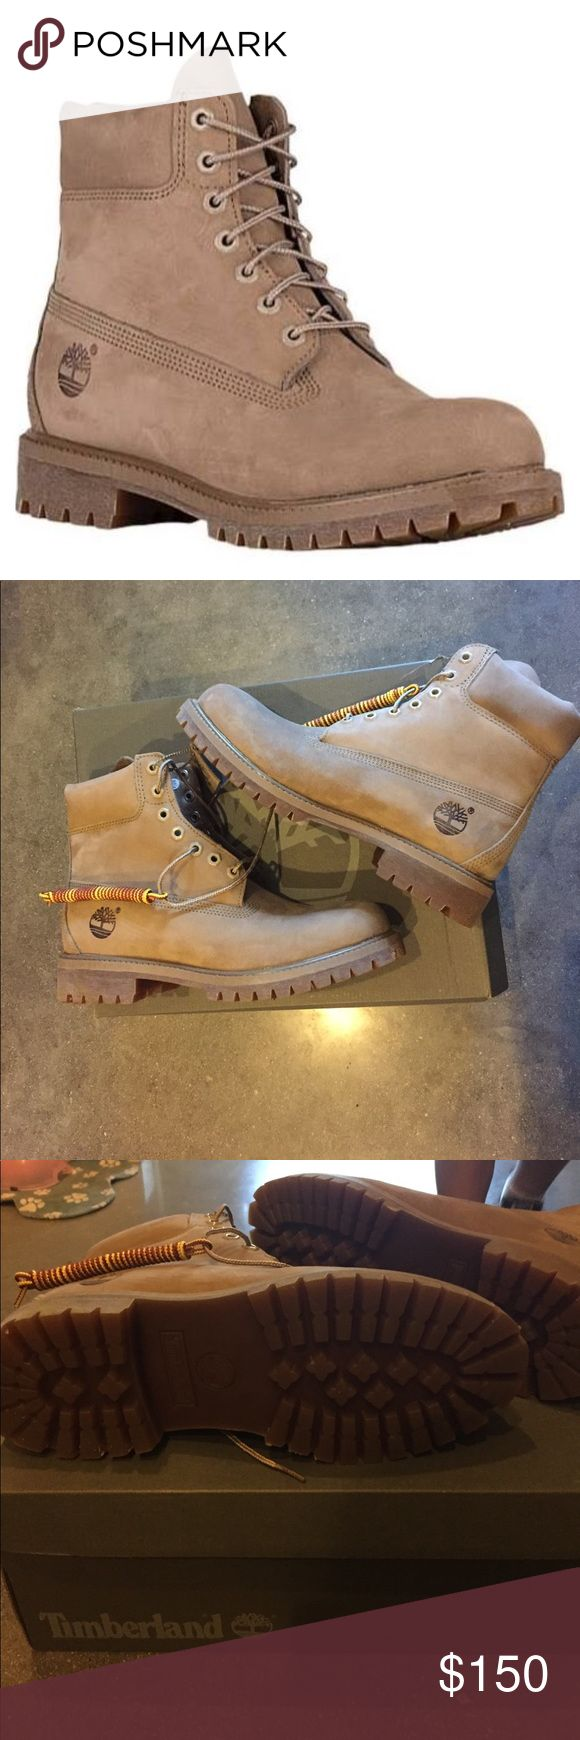 BRAND NEW MENS NUDE TAN TIMBERLANDS Brand new, in box. Never worn!!! Timberland Shoes Boots